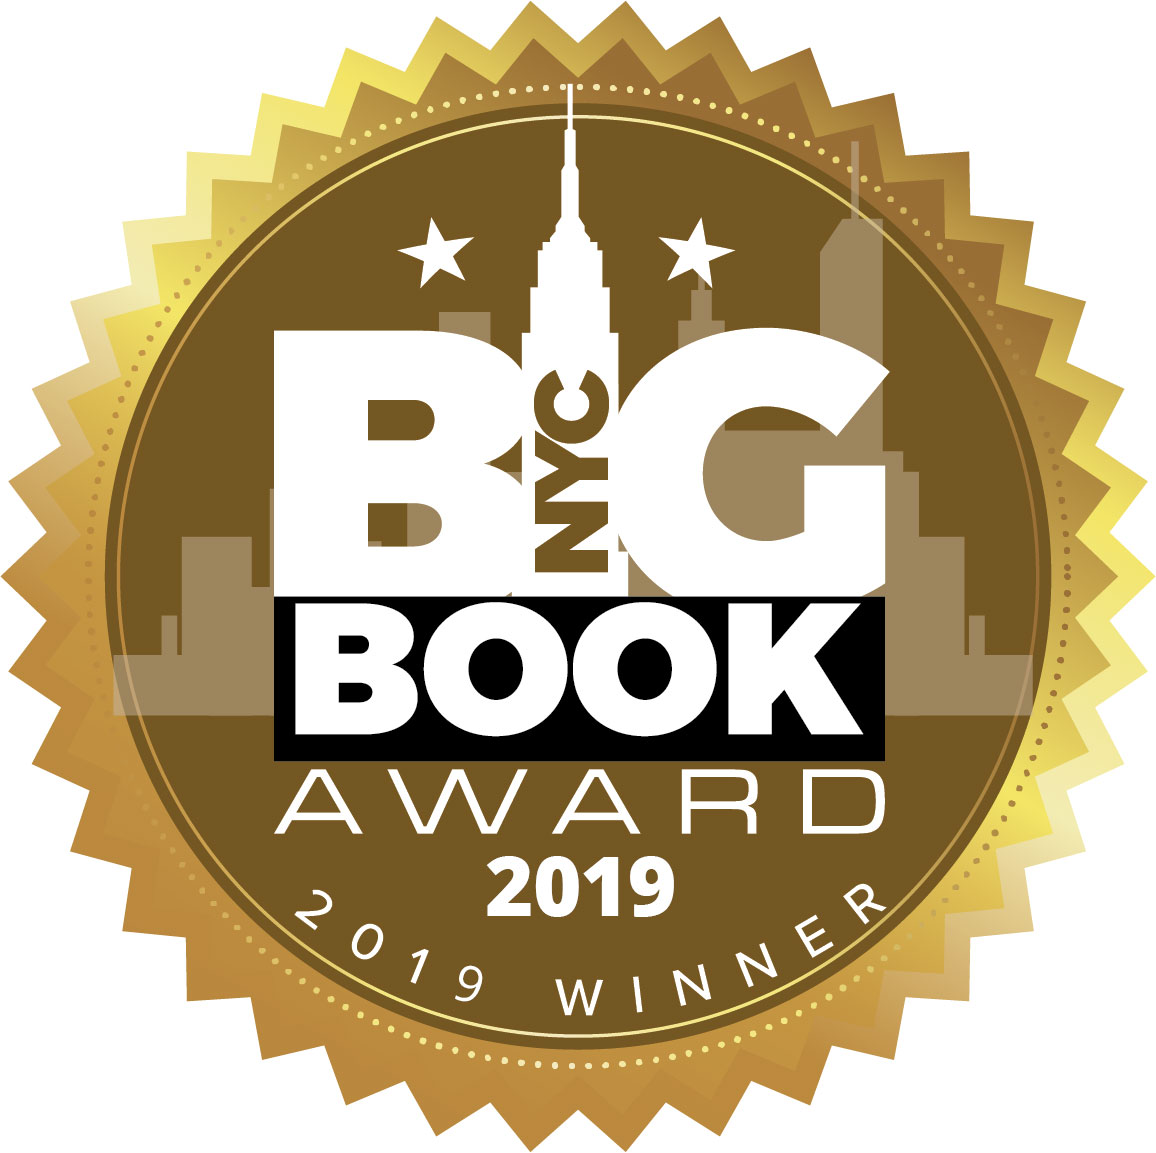 BIG-BOOK-2019-WINNER--for-website